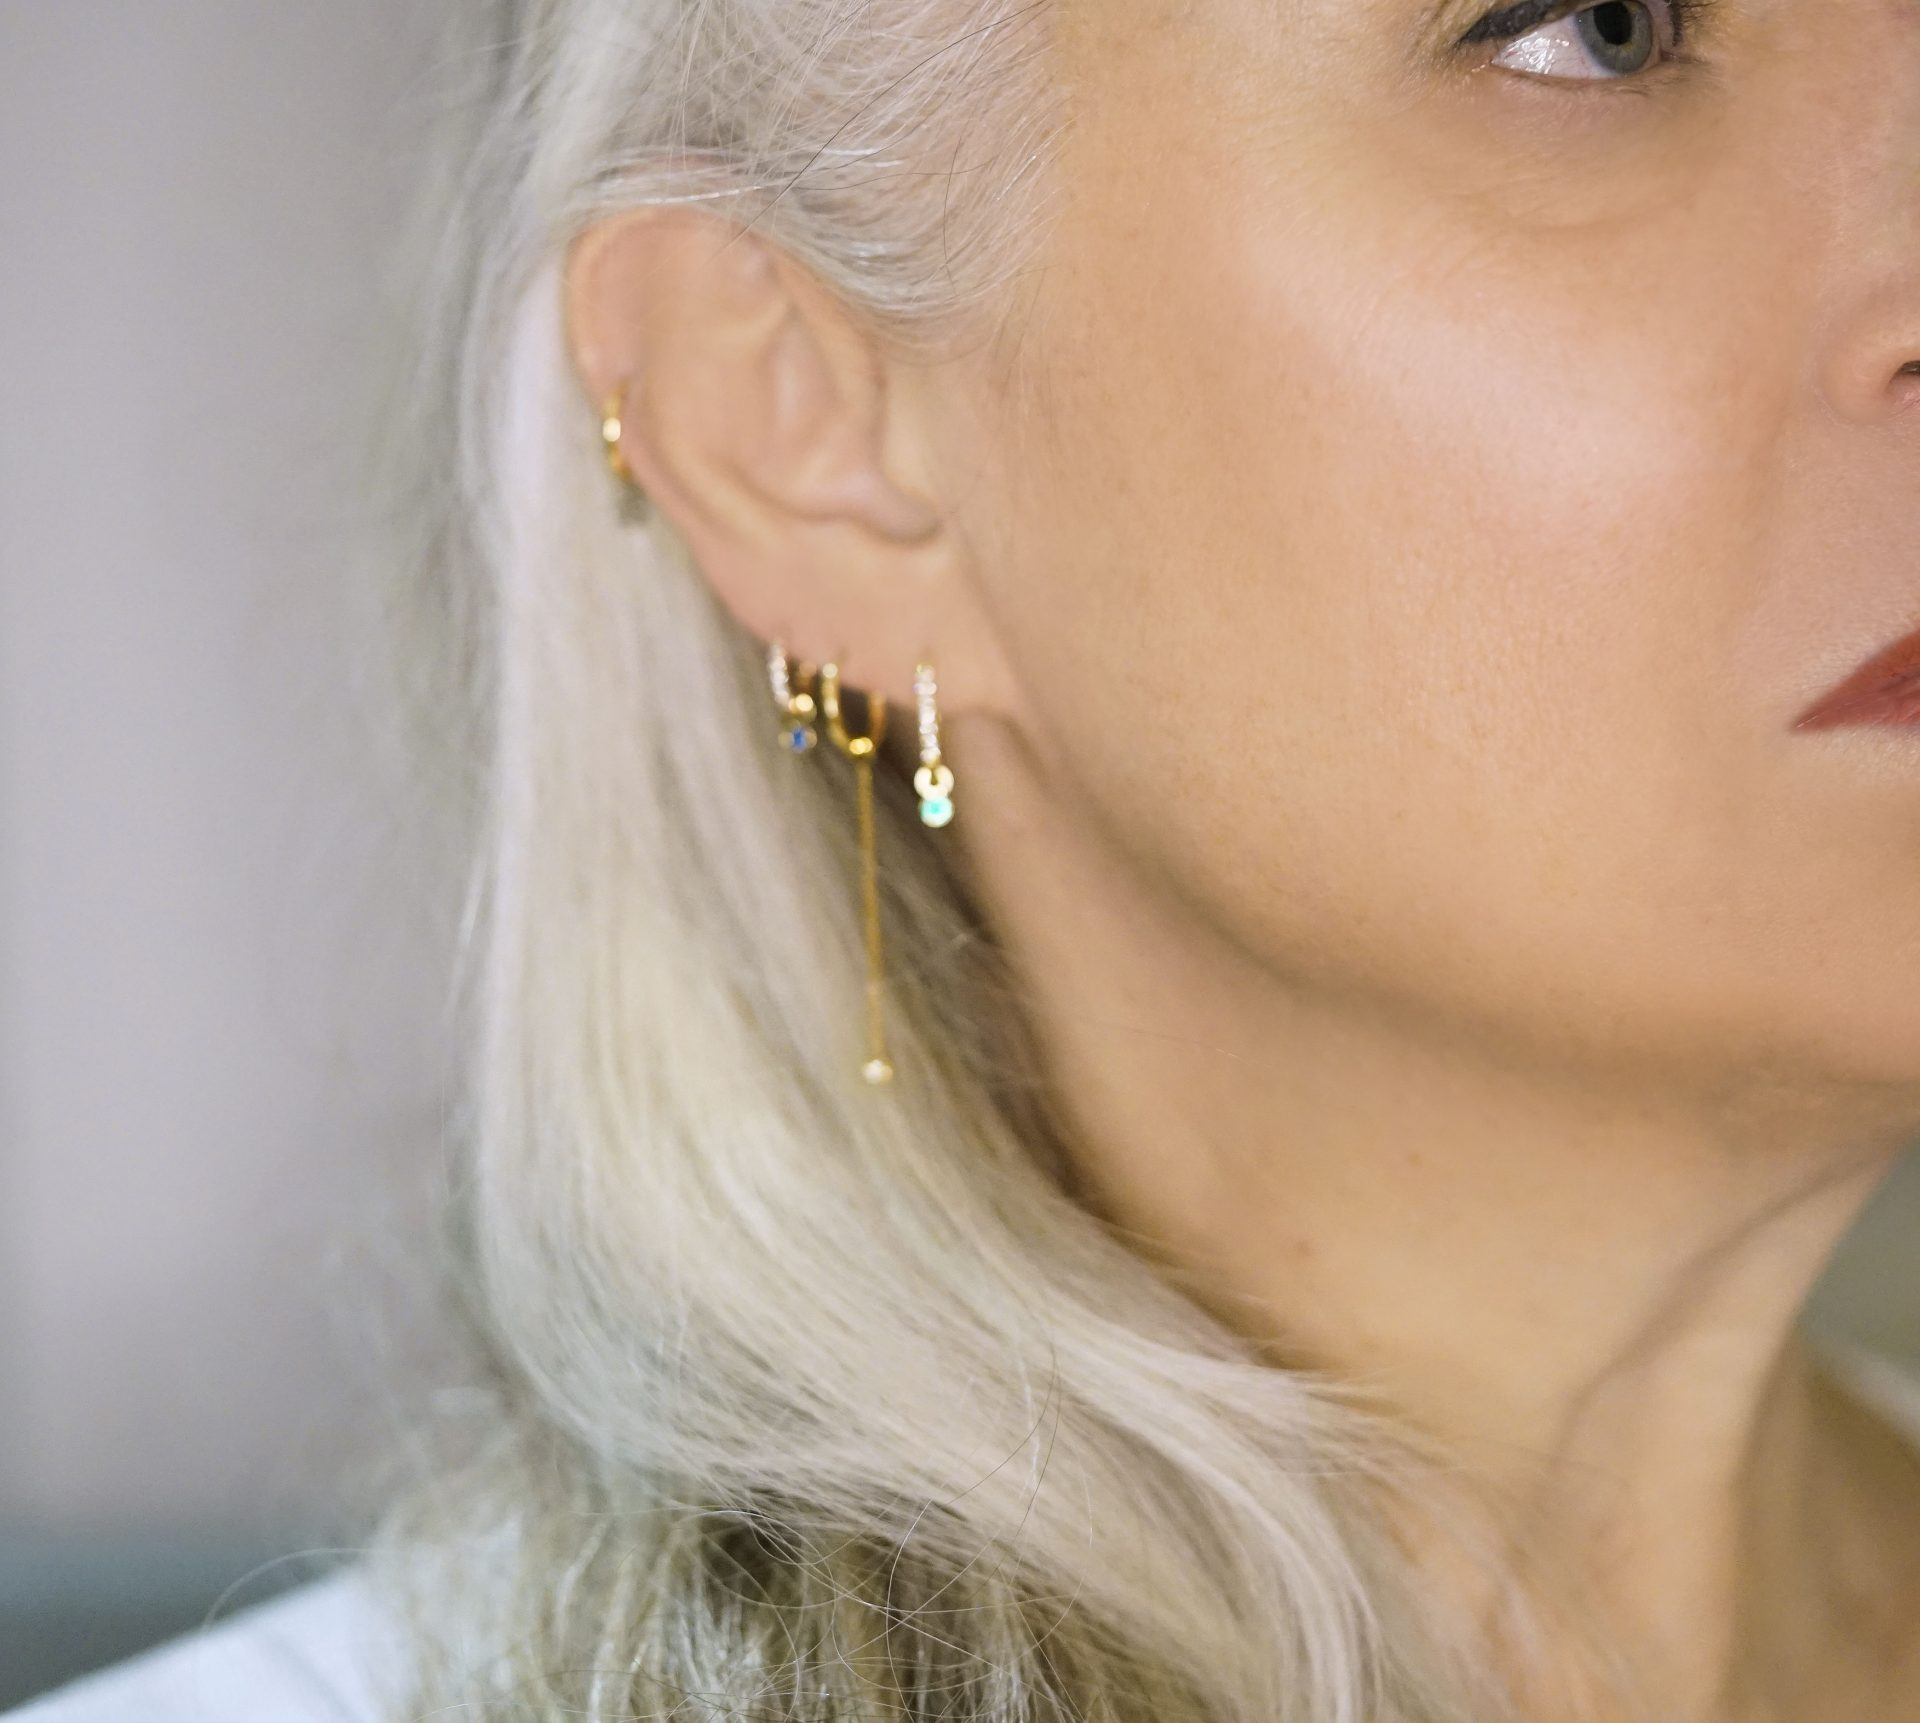 ear-jewellery-tips-for-women-over-50-piercing-cartilage-earrings-lena-cohen-london